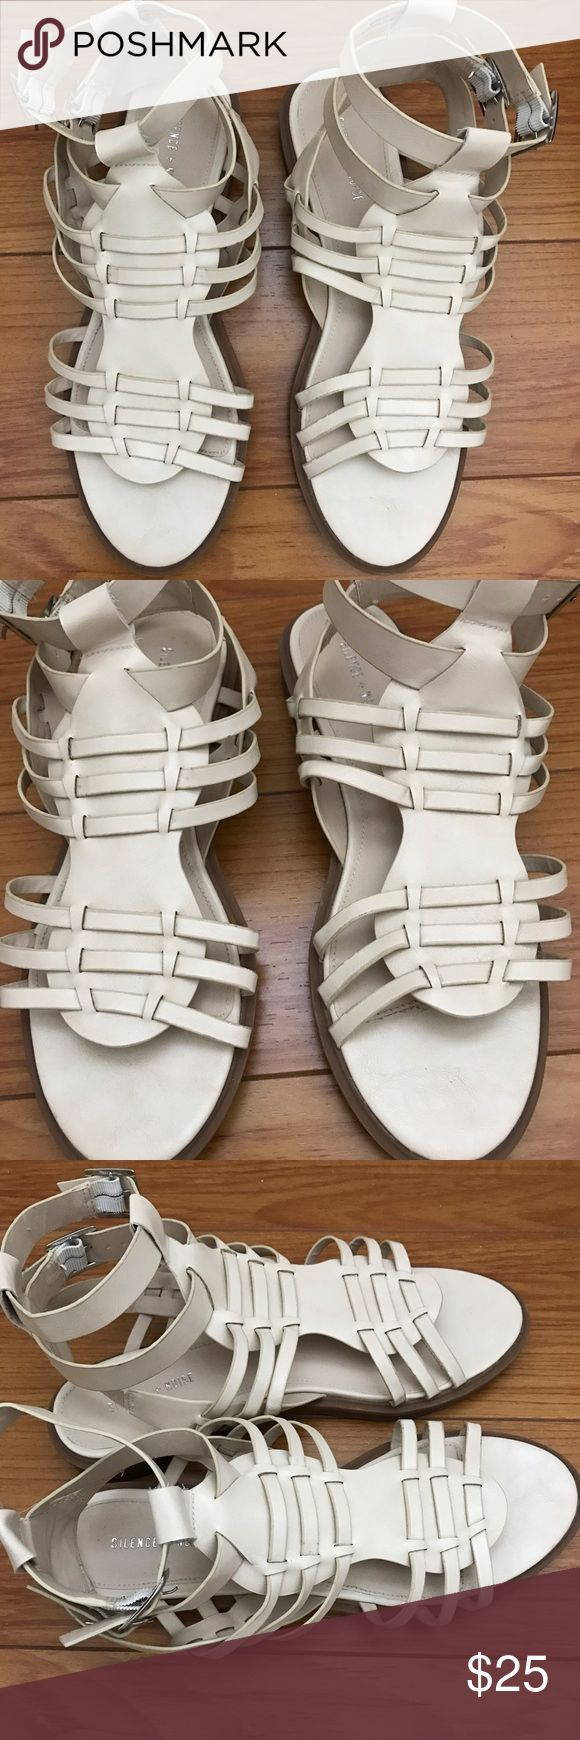 Silence + Noise cream sandals Silence + Noise cream color sandals from Urban Outfitters, worn a few times, still in completely good condition to wear, does not have a box, size 8 Urban Outfitters Shoes